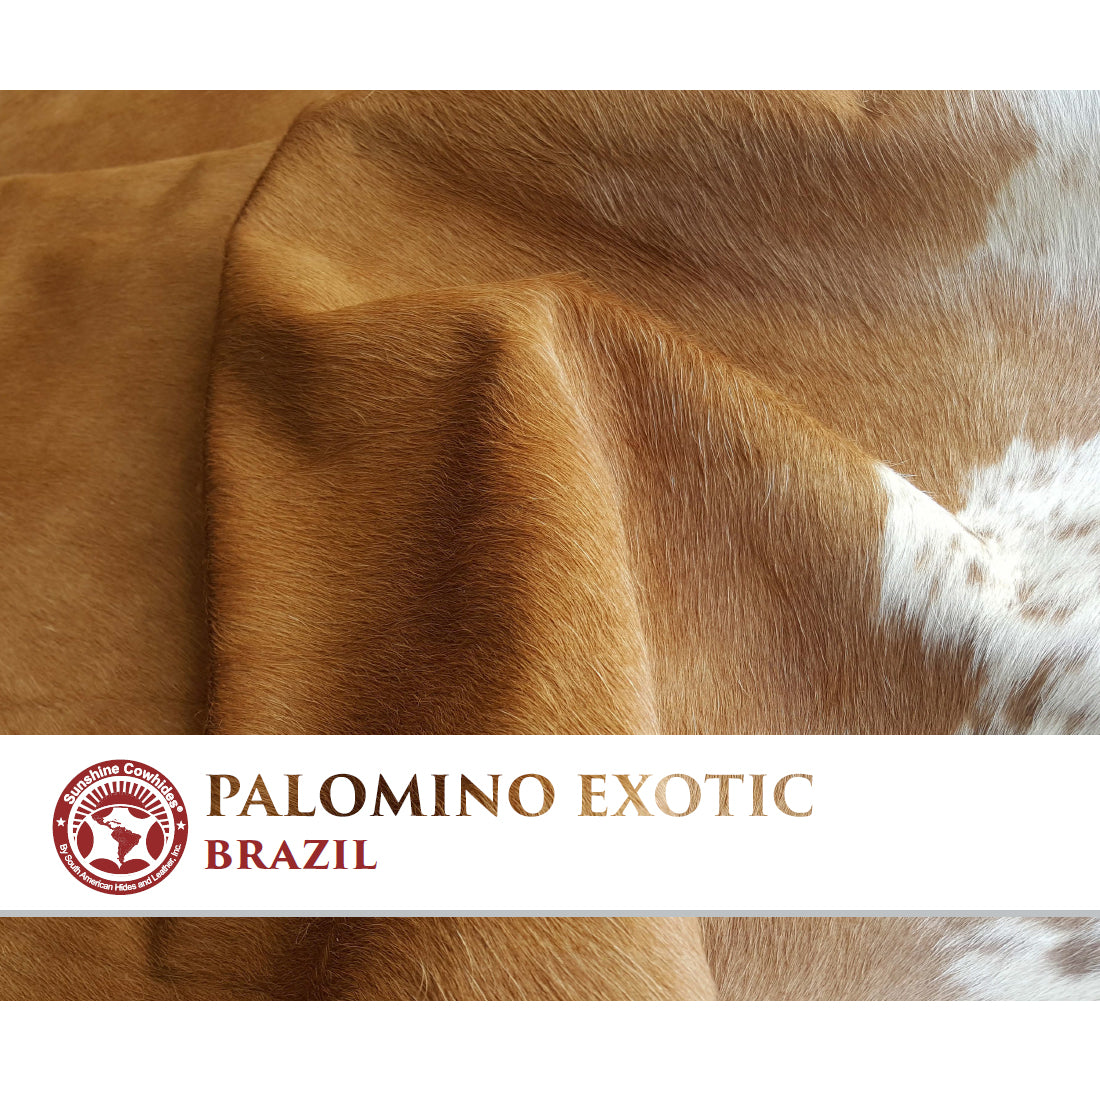 Natural Cowhide Rug - Palomino Exotic